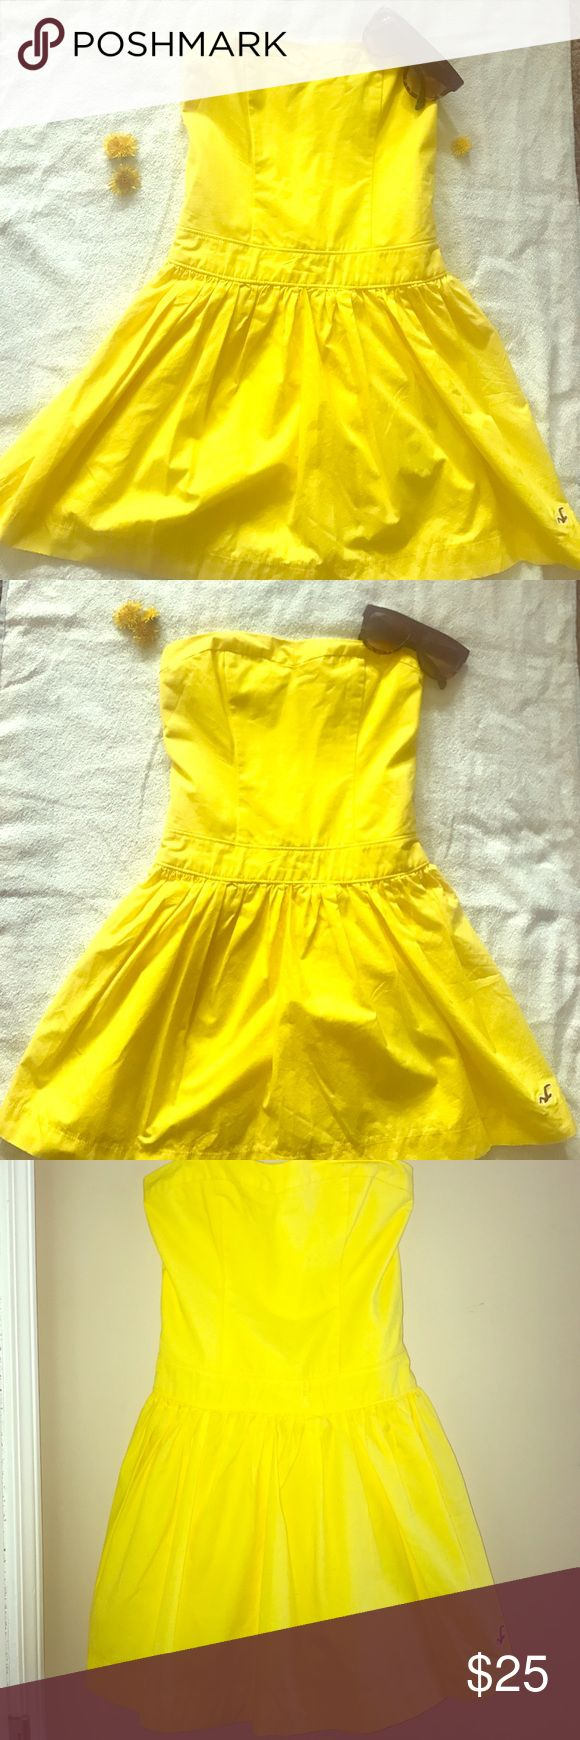 Hollister Strapless Mini Dress Yellow Mini Dress. Cute and Fits Great ‼️ No stains or wear and tear. Great springtime pick 😍 Hollister Dresses Strapless